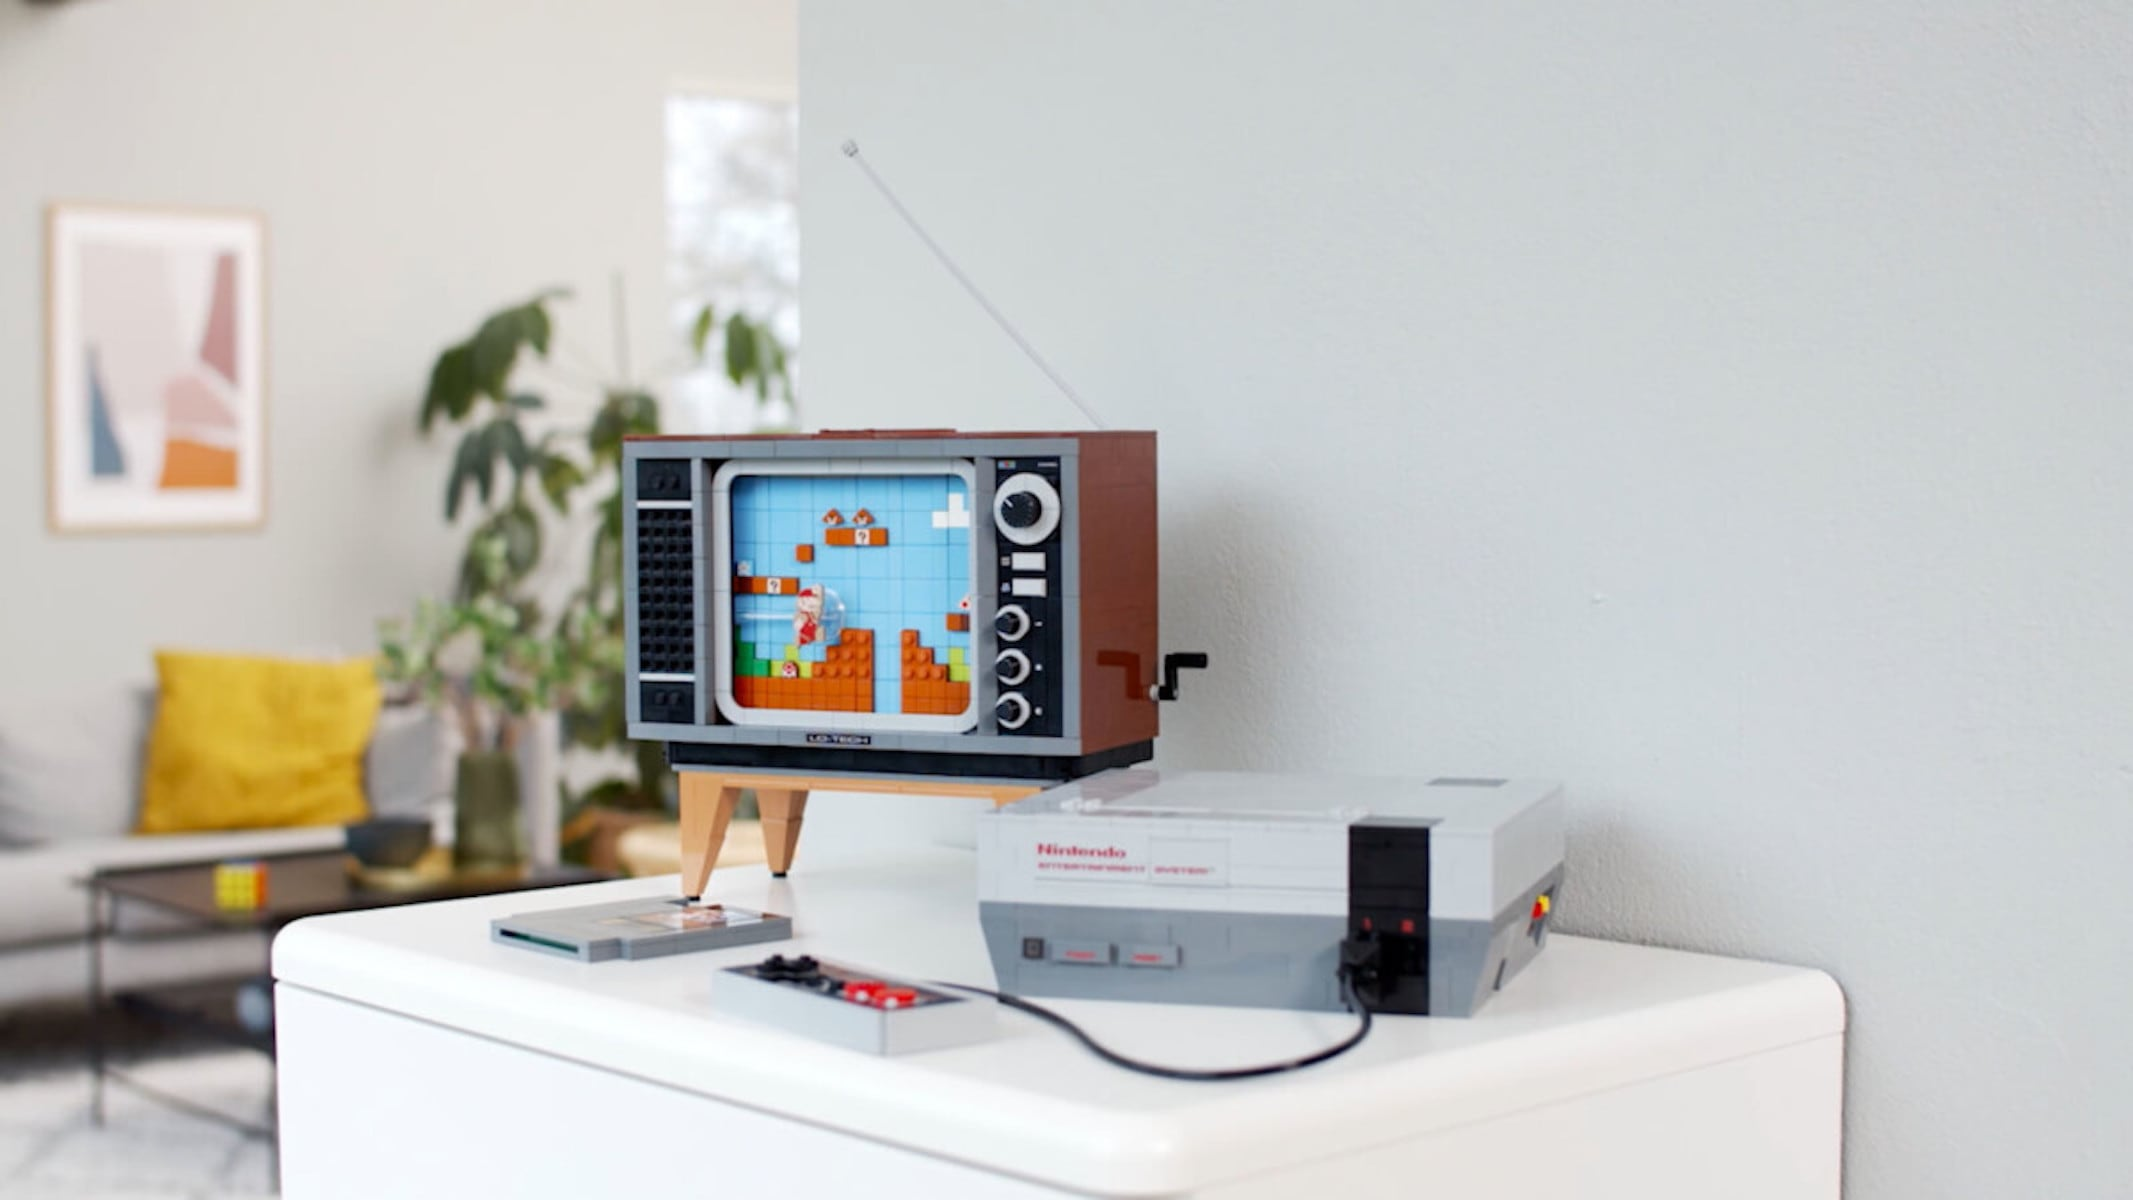 These LEGO gadgets merge tech with building blocks